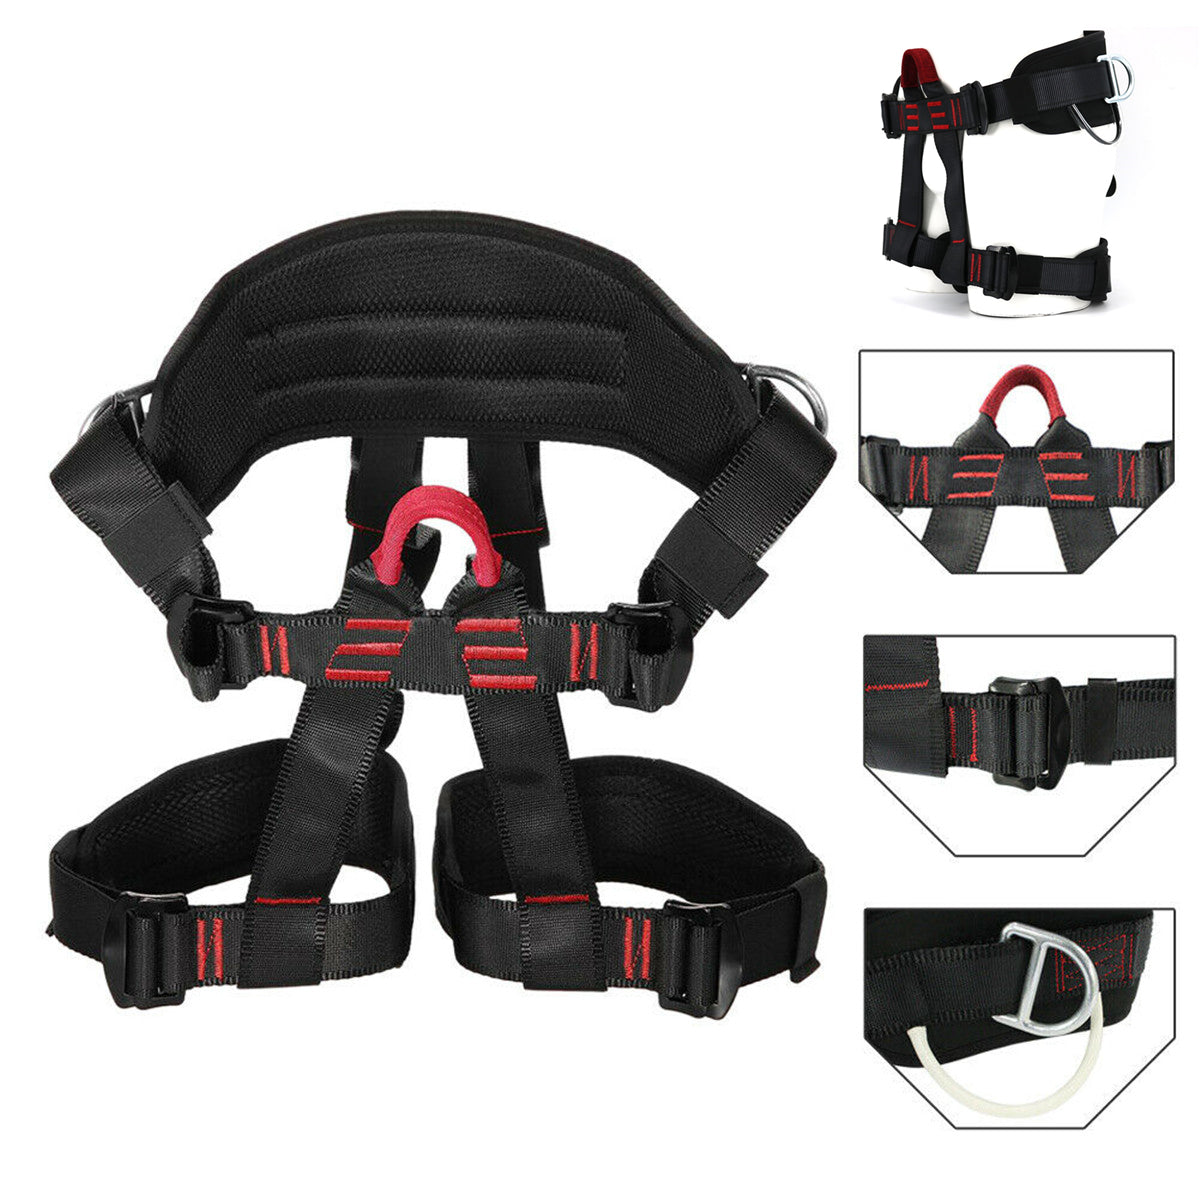 Tree Carving Rock Climbing Harness Equip Gear Rappel Rescue Safety Seat Belt